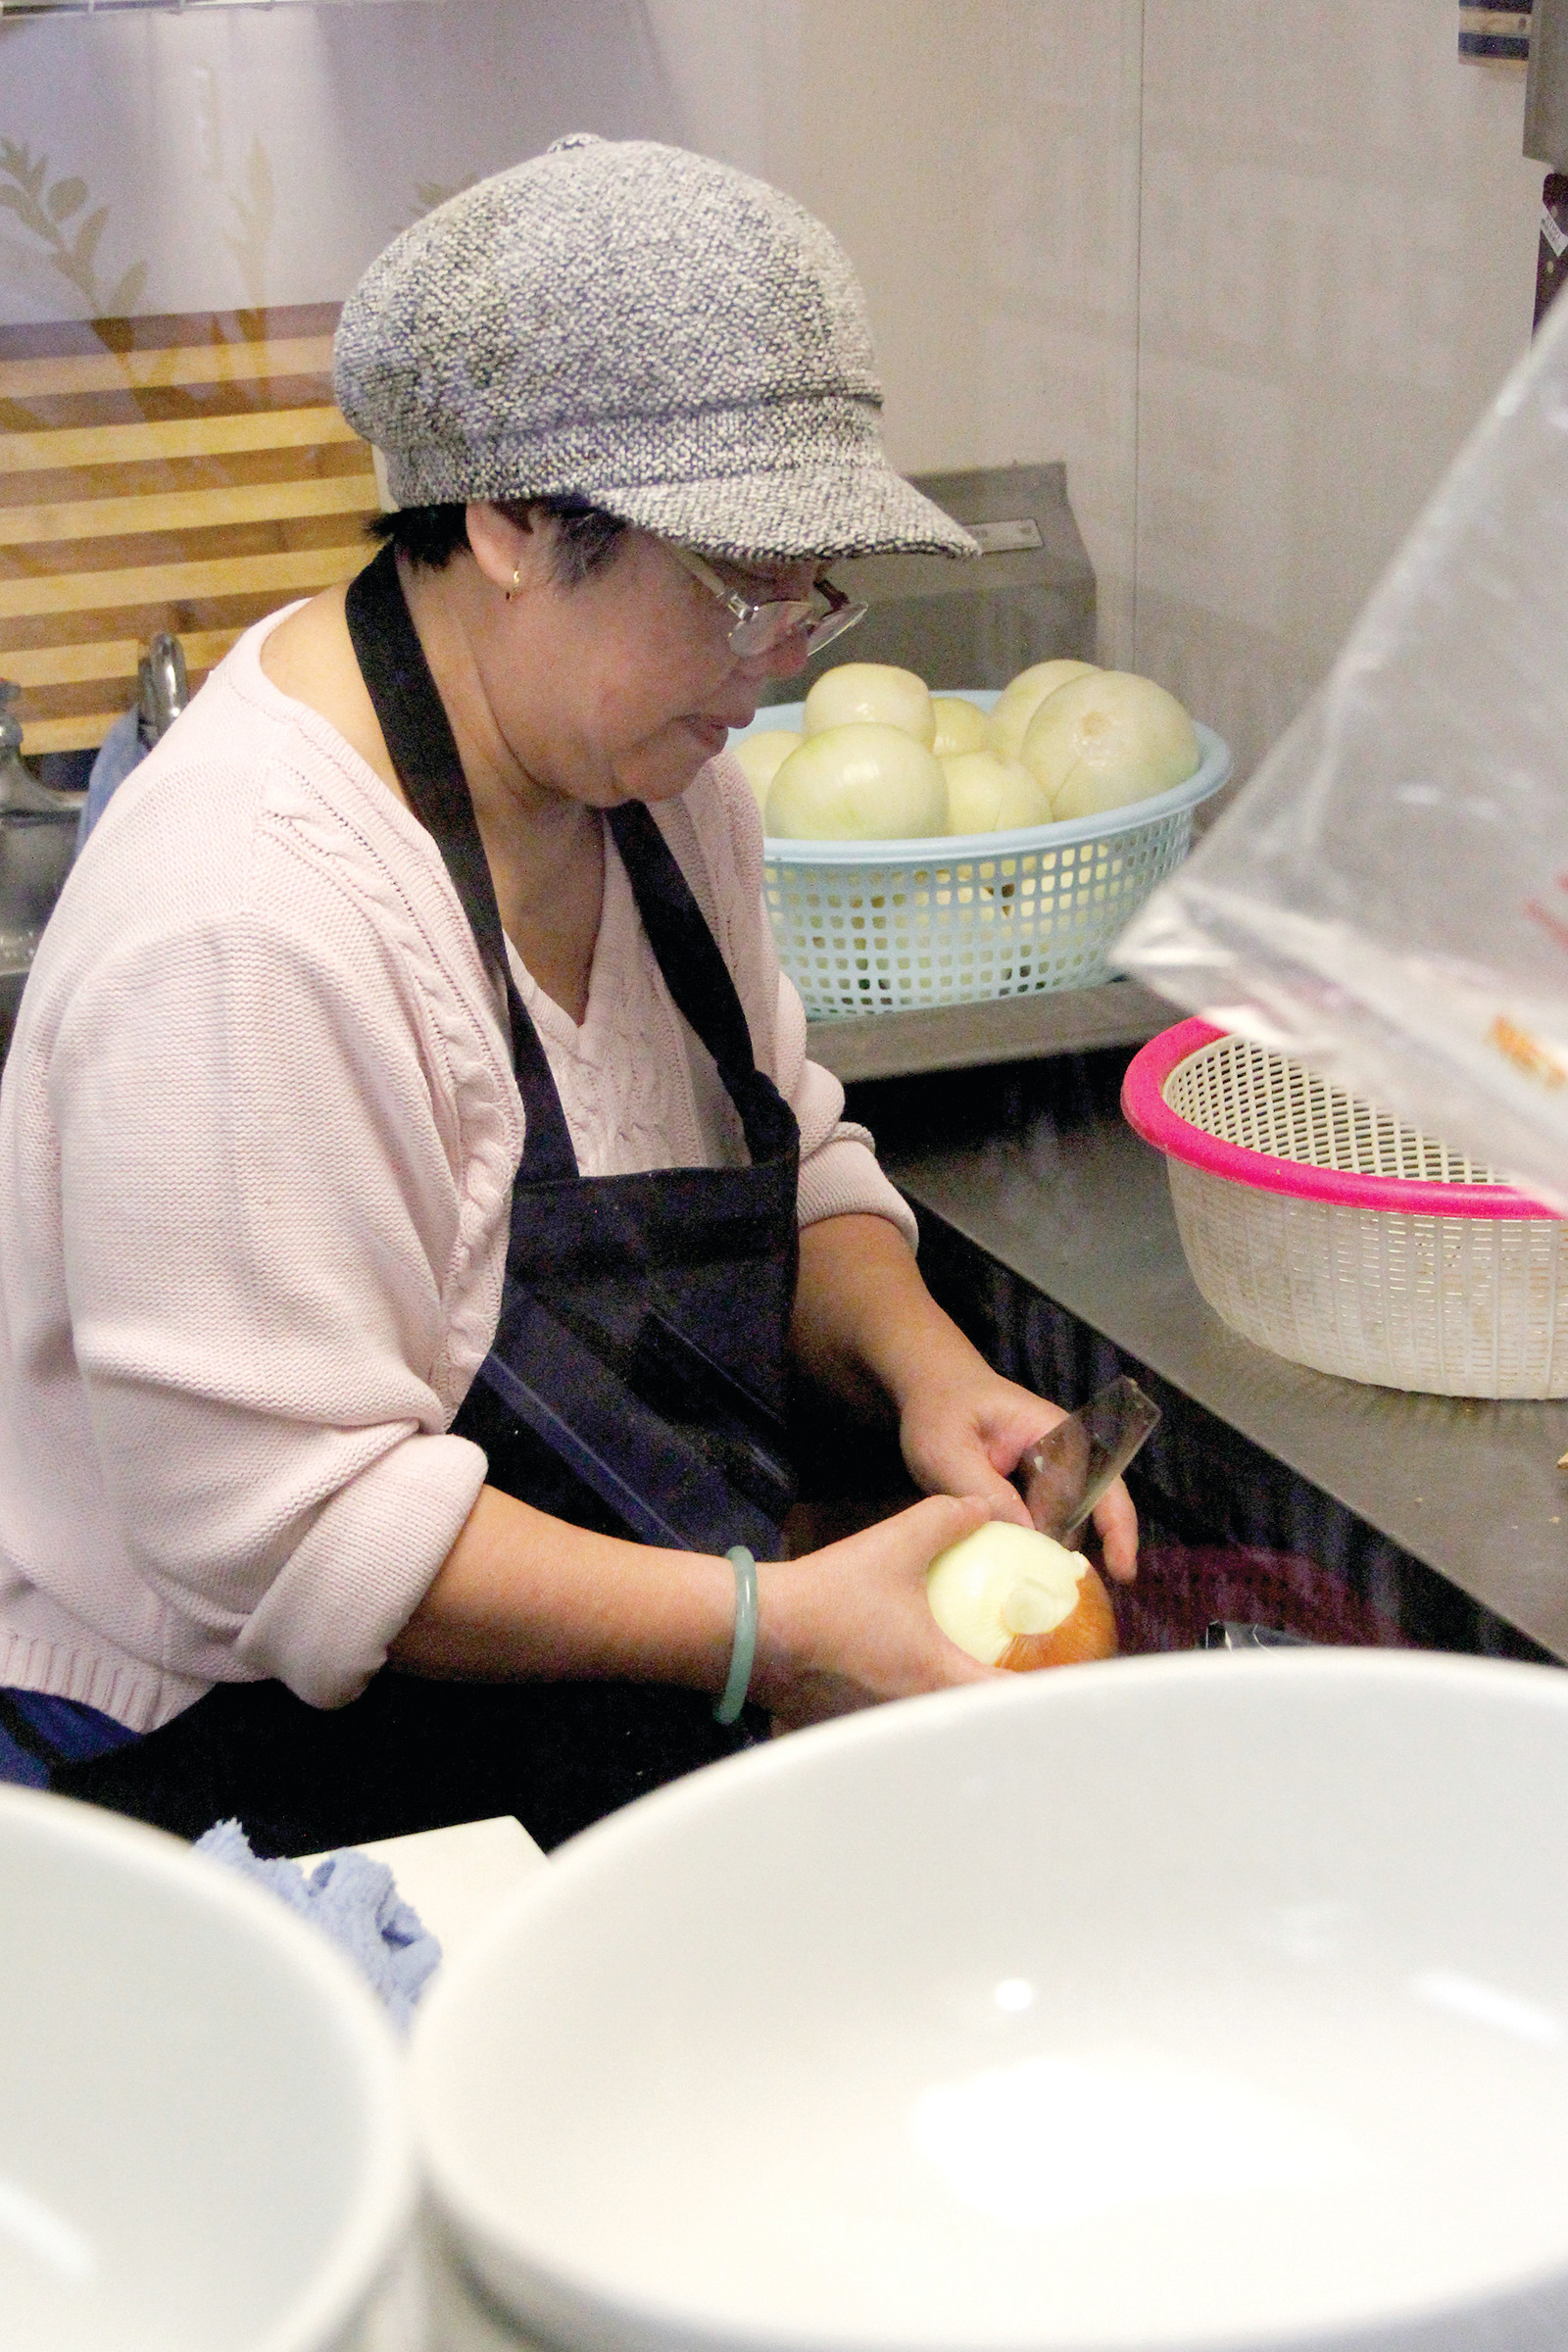 Dung Nguyen slices onions in the kitchen at Pho Real in Littleton. Customers and pho restauranteurs say using fresh ingredients is critical to a good bowl of pho.